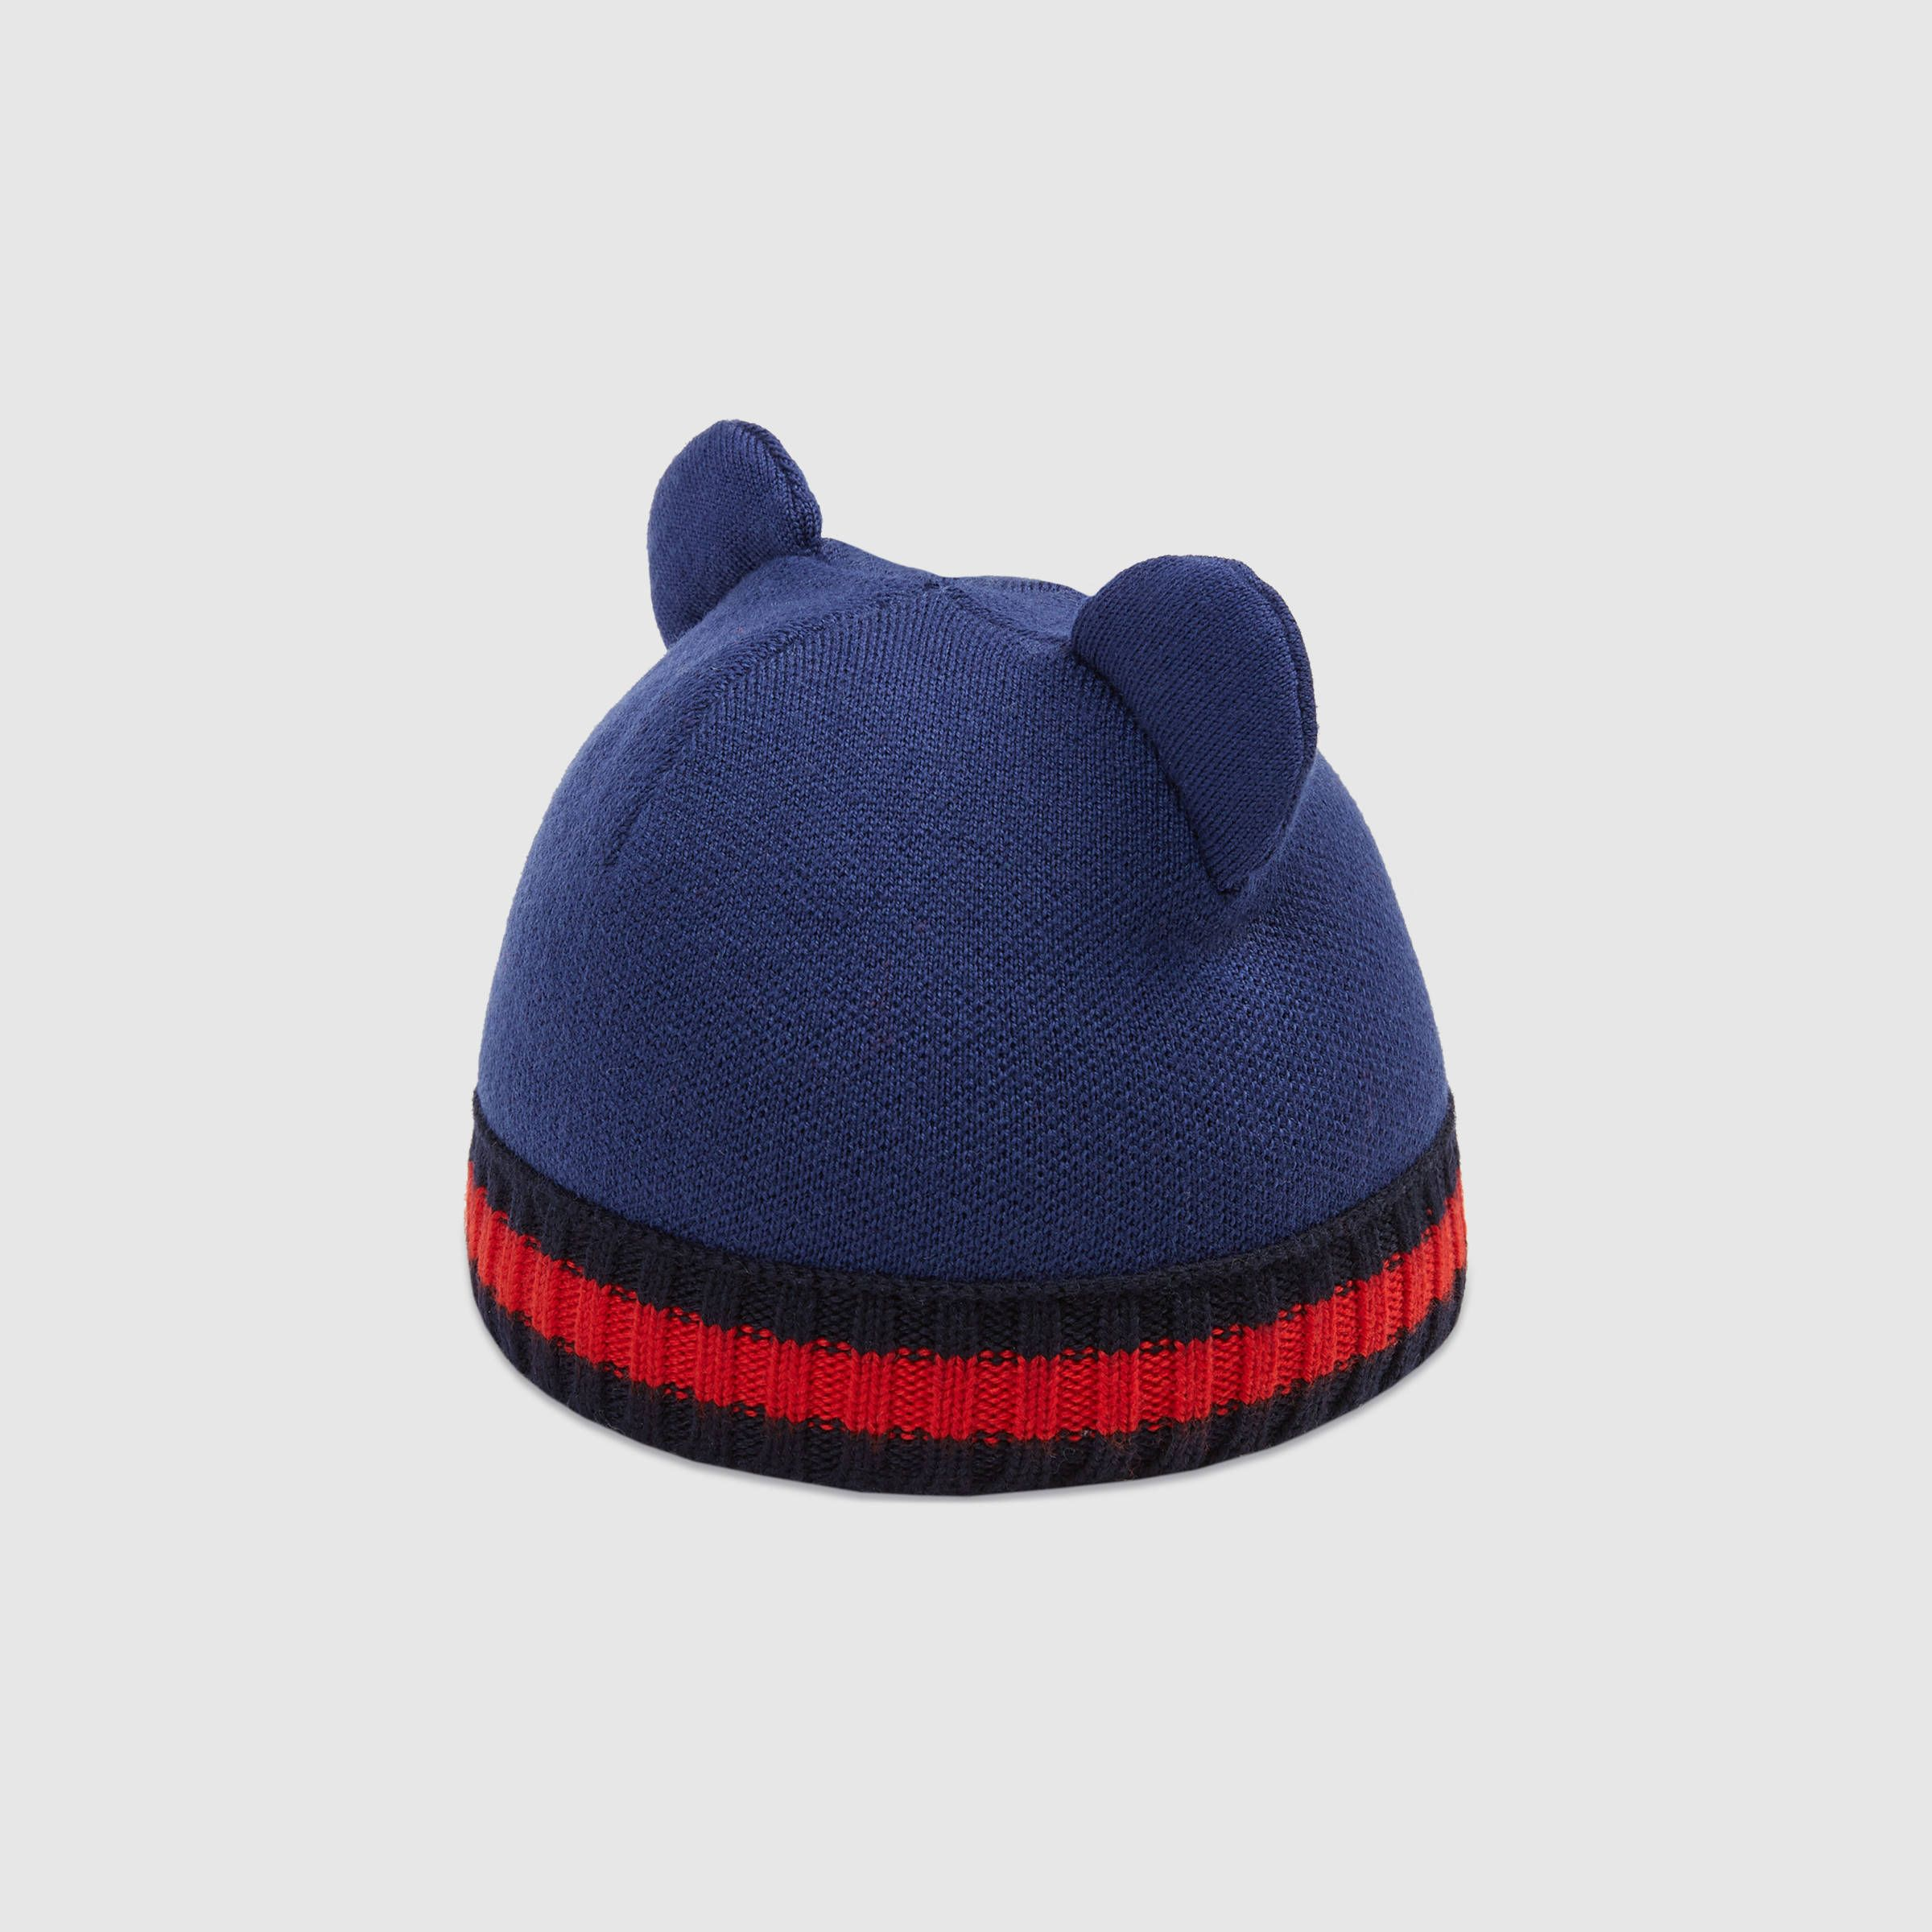 77ff2e160f7c Baby knit hat with ears - Gucci Baby Hats 4509083K2064268   twinz ...